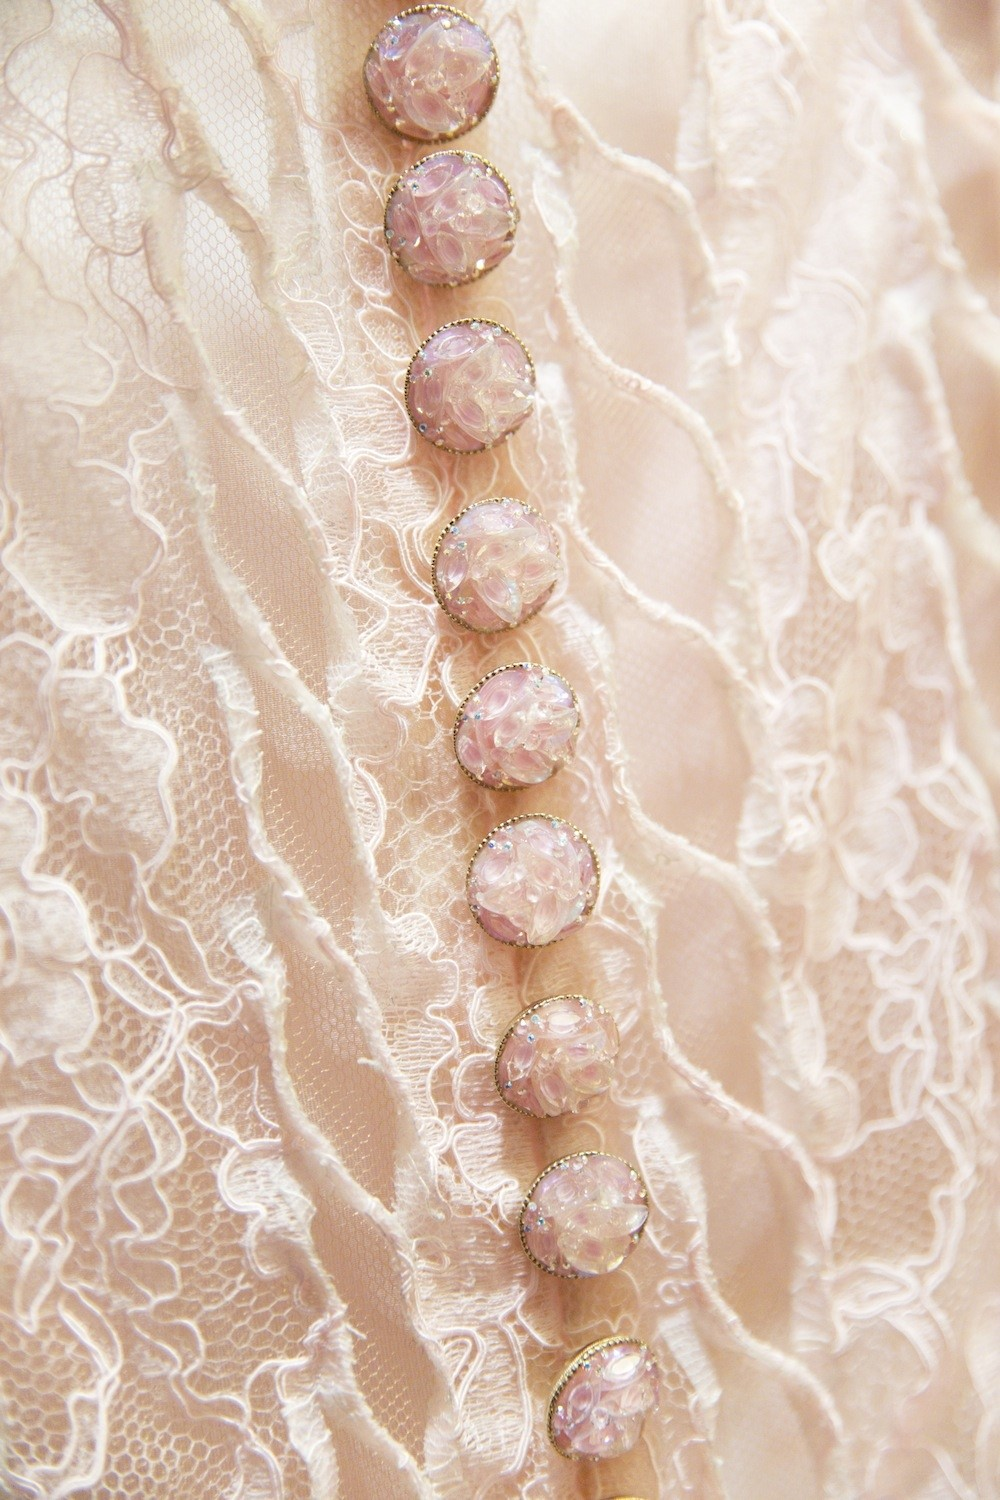 Close-ups: Chanel Spring 2015 Couture